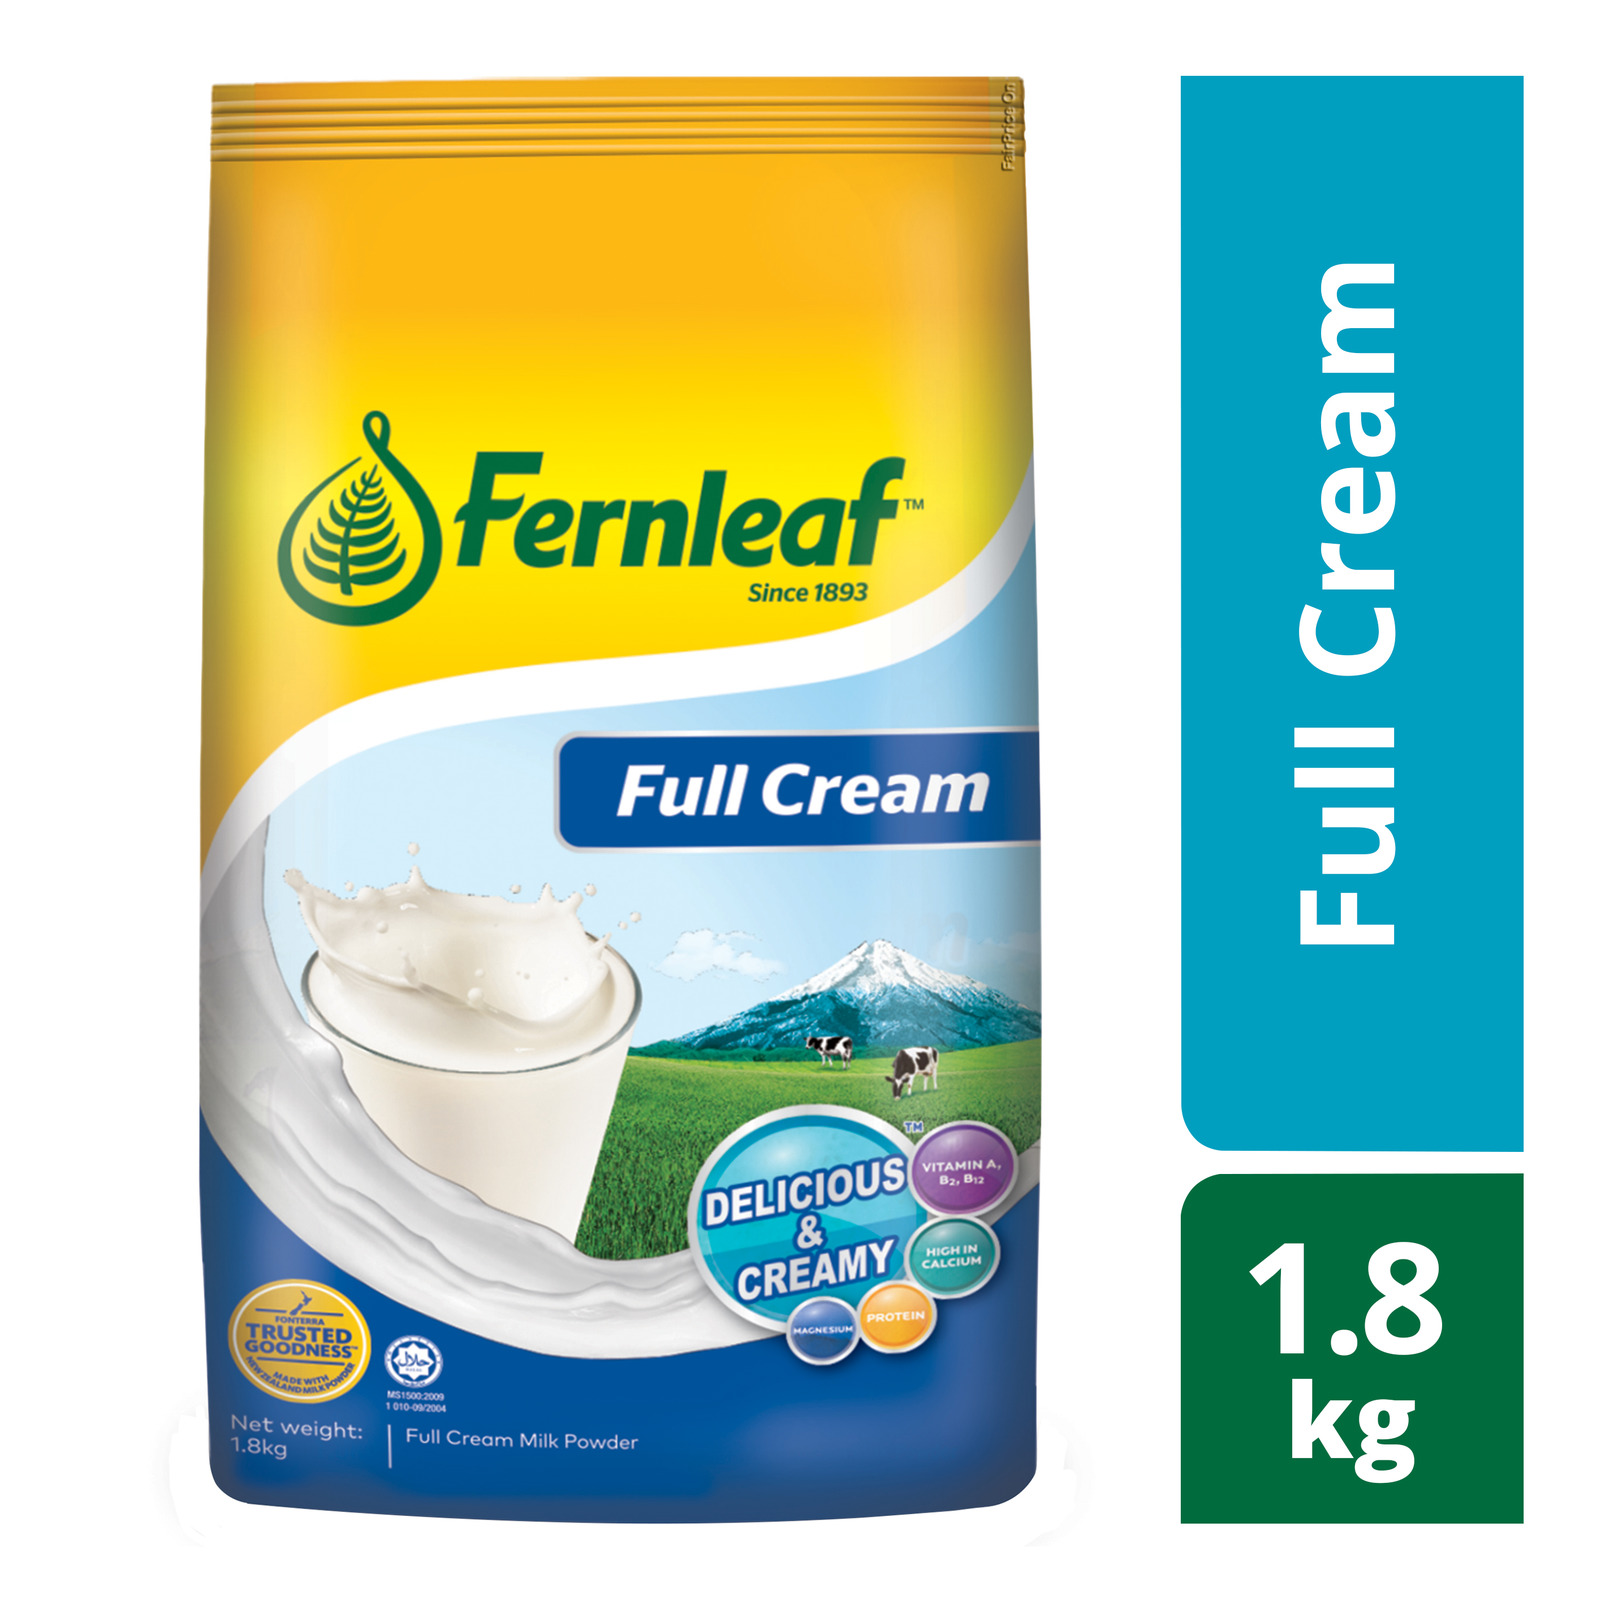 Fernleaf Full Cream Milk Powder 1.8KG